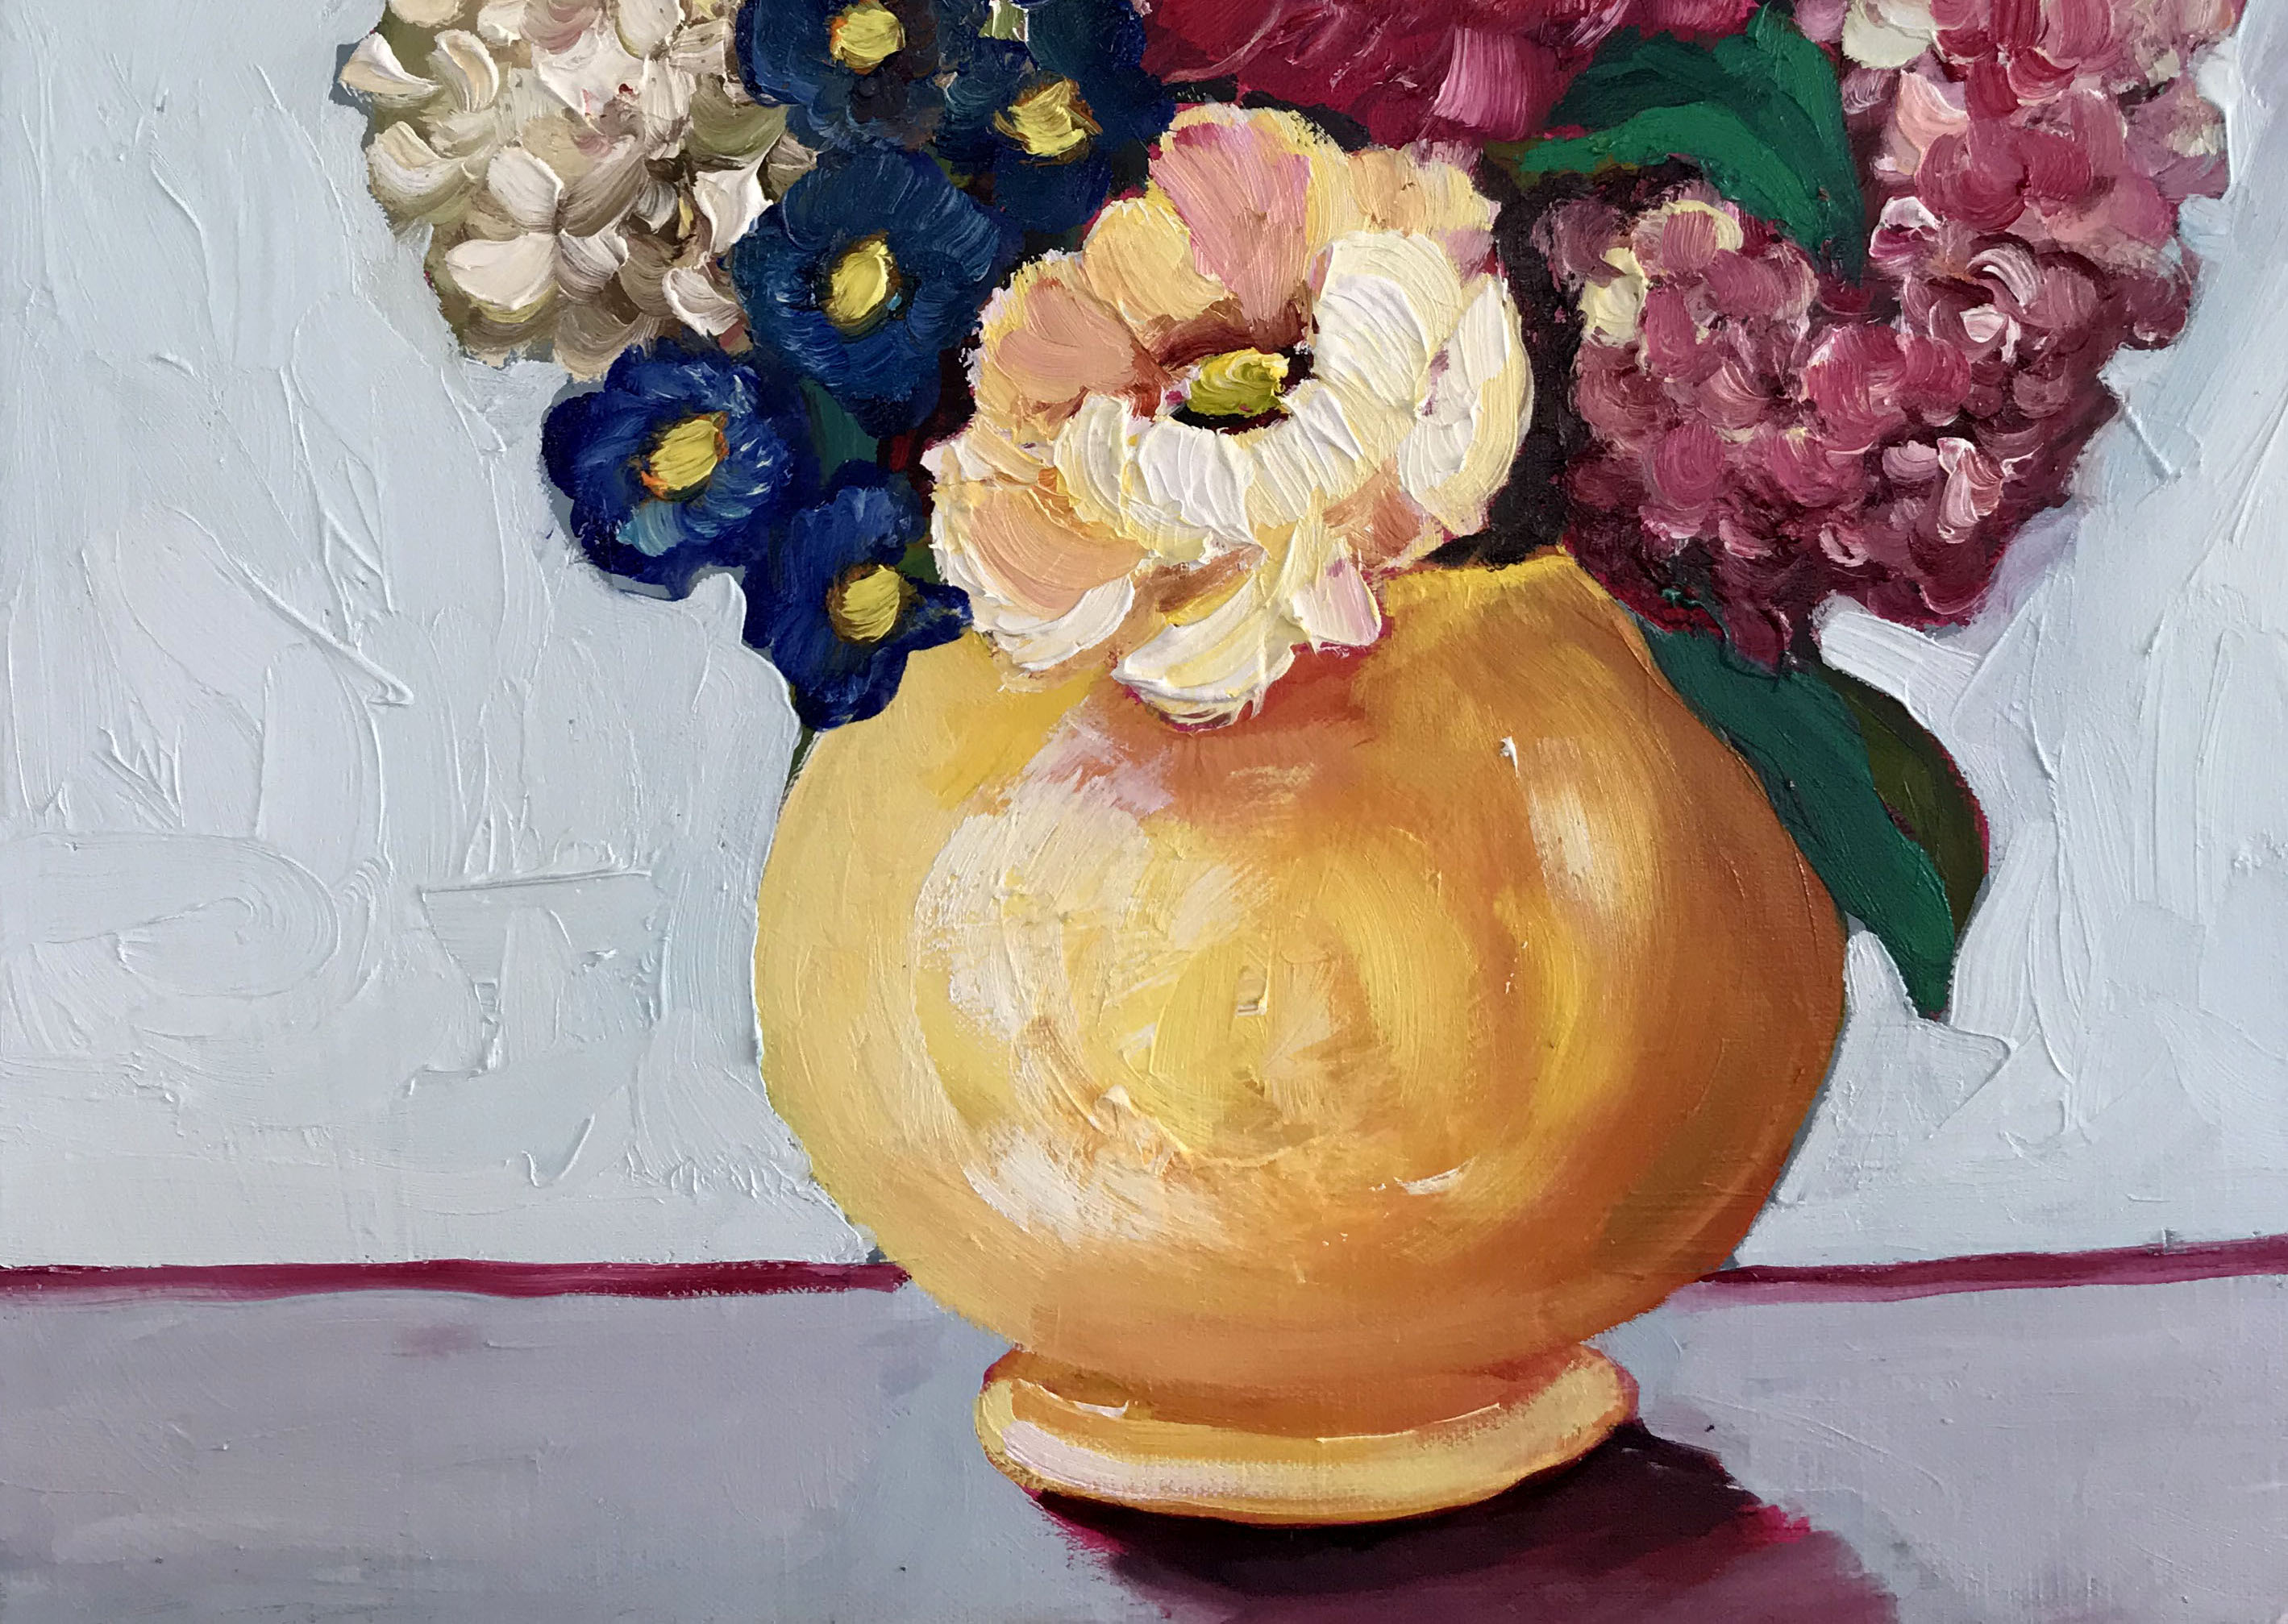 Ali Wood, Yellow Jug and Mixed Bloom, oil on board, white box frame, 51x41